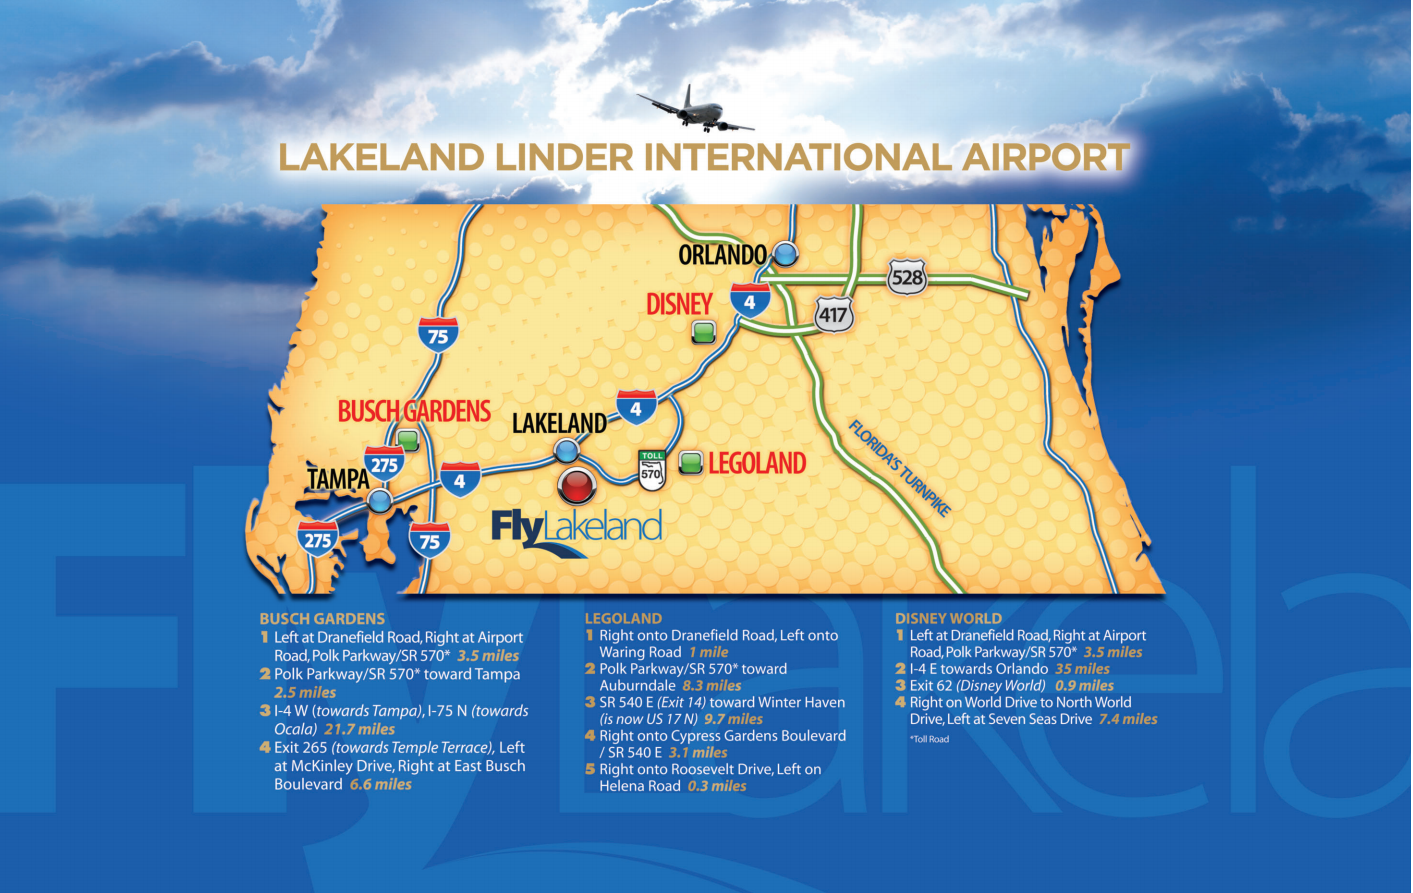 Map of Florida with FlyLakeland watermark showing the cities of Tampa, Lakeland, and Orlando and locations of Lakeland Linder international airport, Busch gardens, Legoland, and Disney. Busch garden can be reached from the airport via Drane field road, Polk parkway, (Interstate 4) I-4 W, and Exit 265. Legoland can be reached via Drane field road, Waring road, Polk parkway, SR 540 E, and Helena Road. Disney world can be reached via Drane field road, Polk parkway, I-4 E, Exit 62, and Seven seas drive.